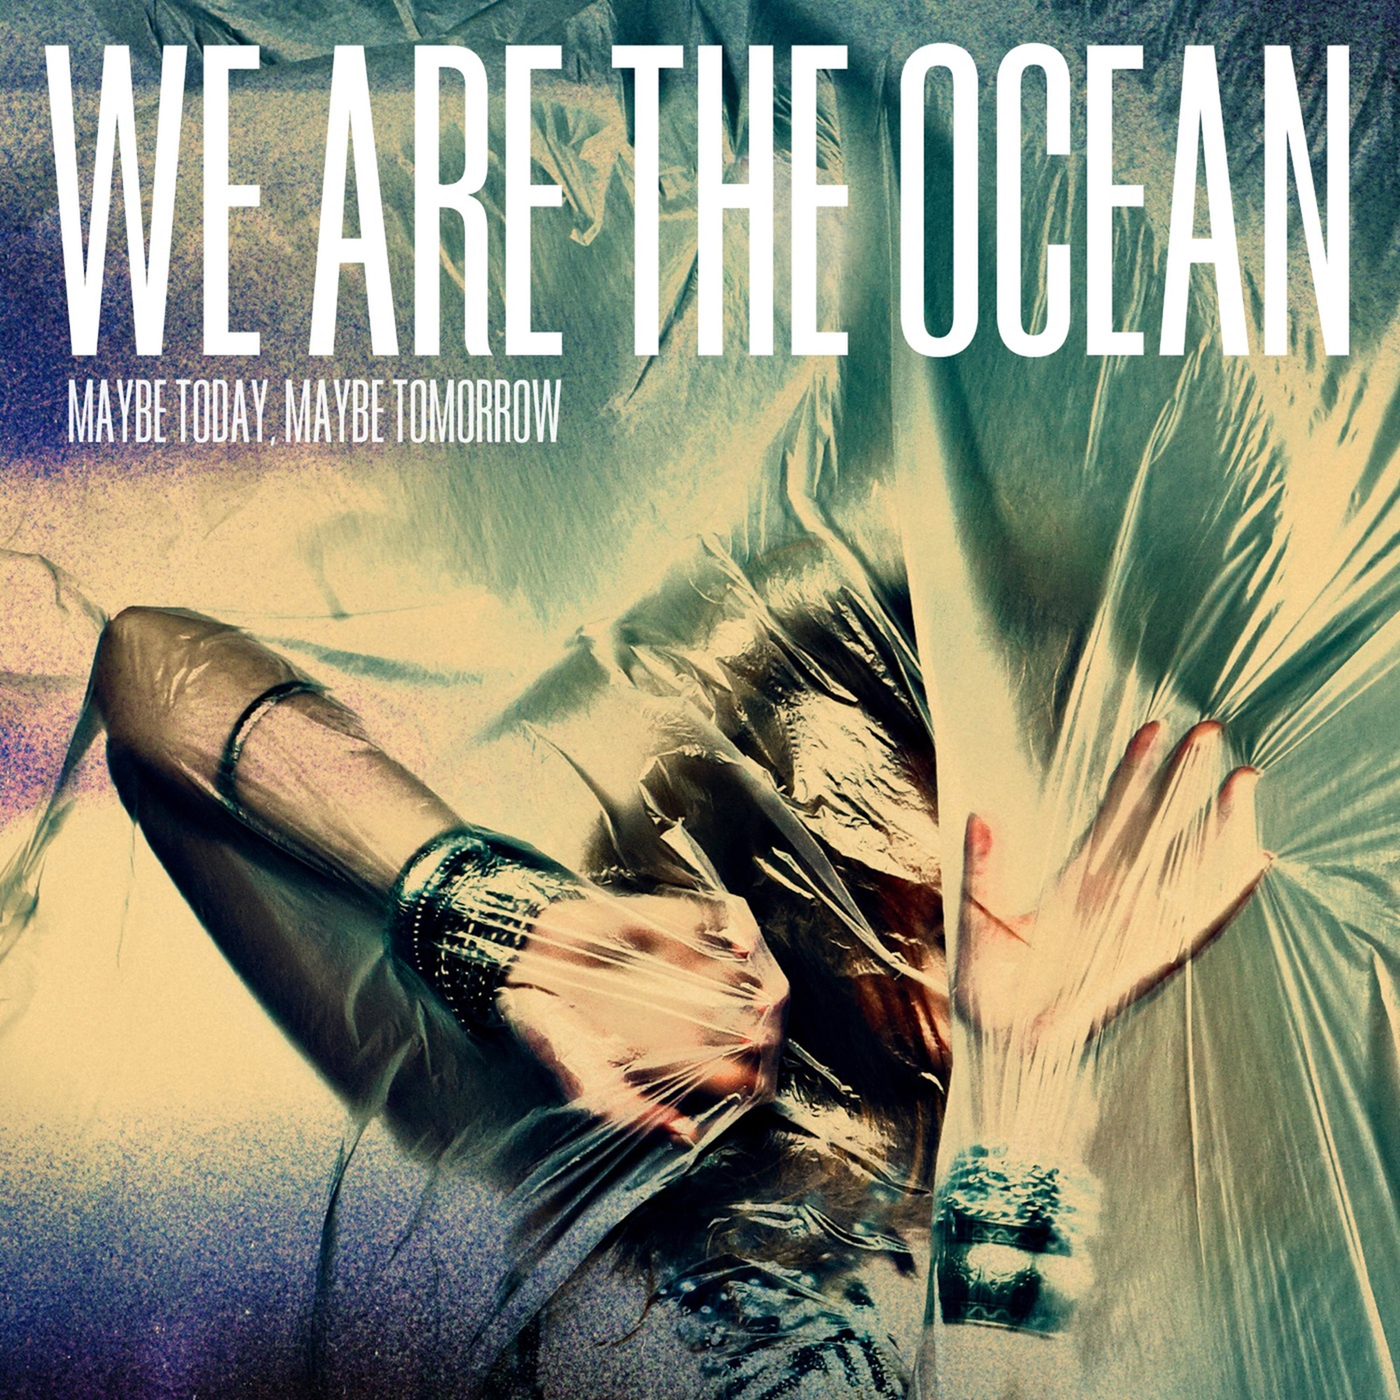 We Are The Ocean - Maybe Today, Maybe Tomorrow (2012)